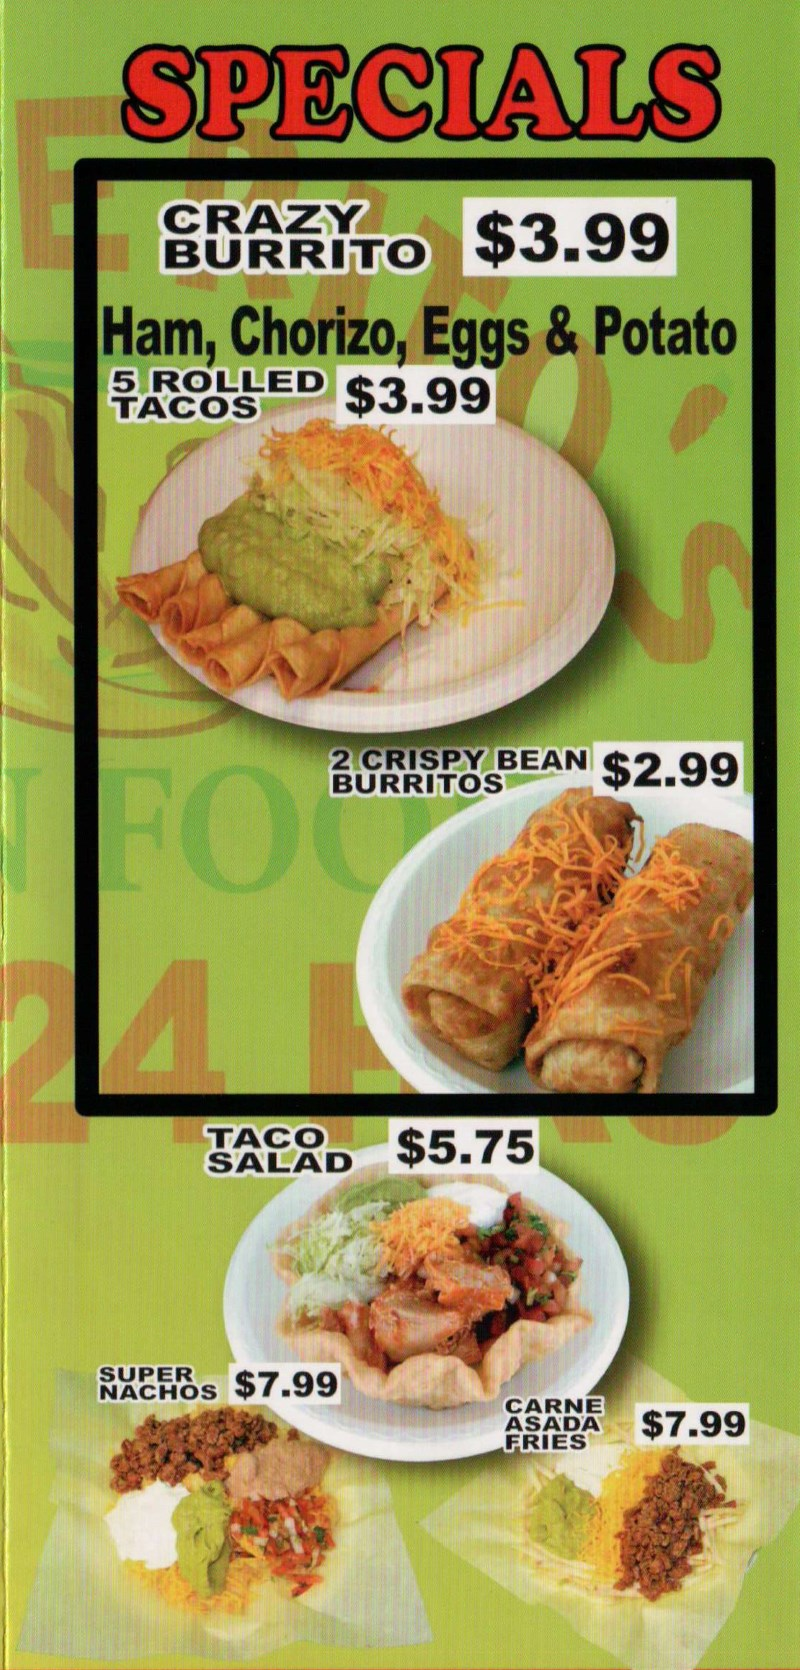 Rancherito's Mexican Food - specials